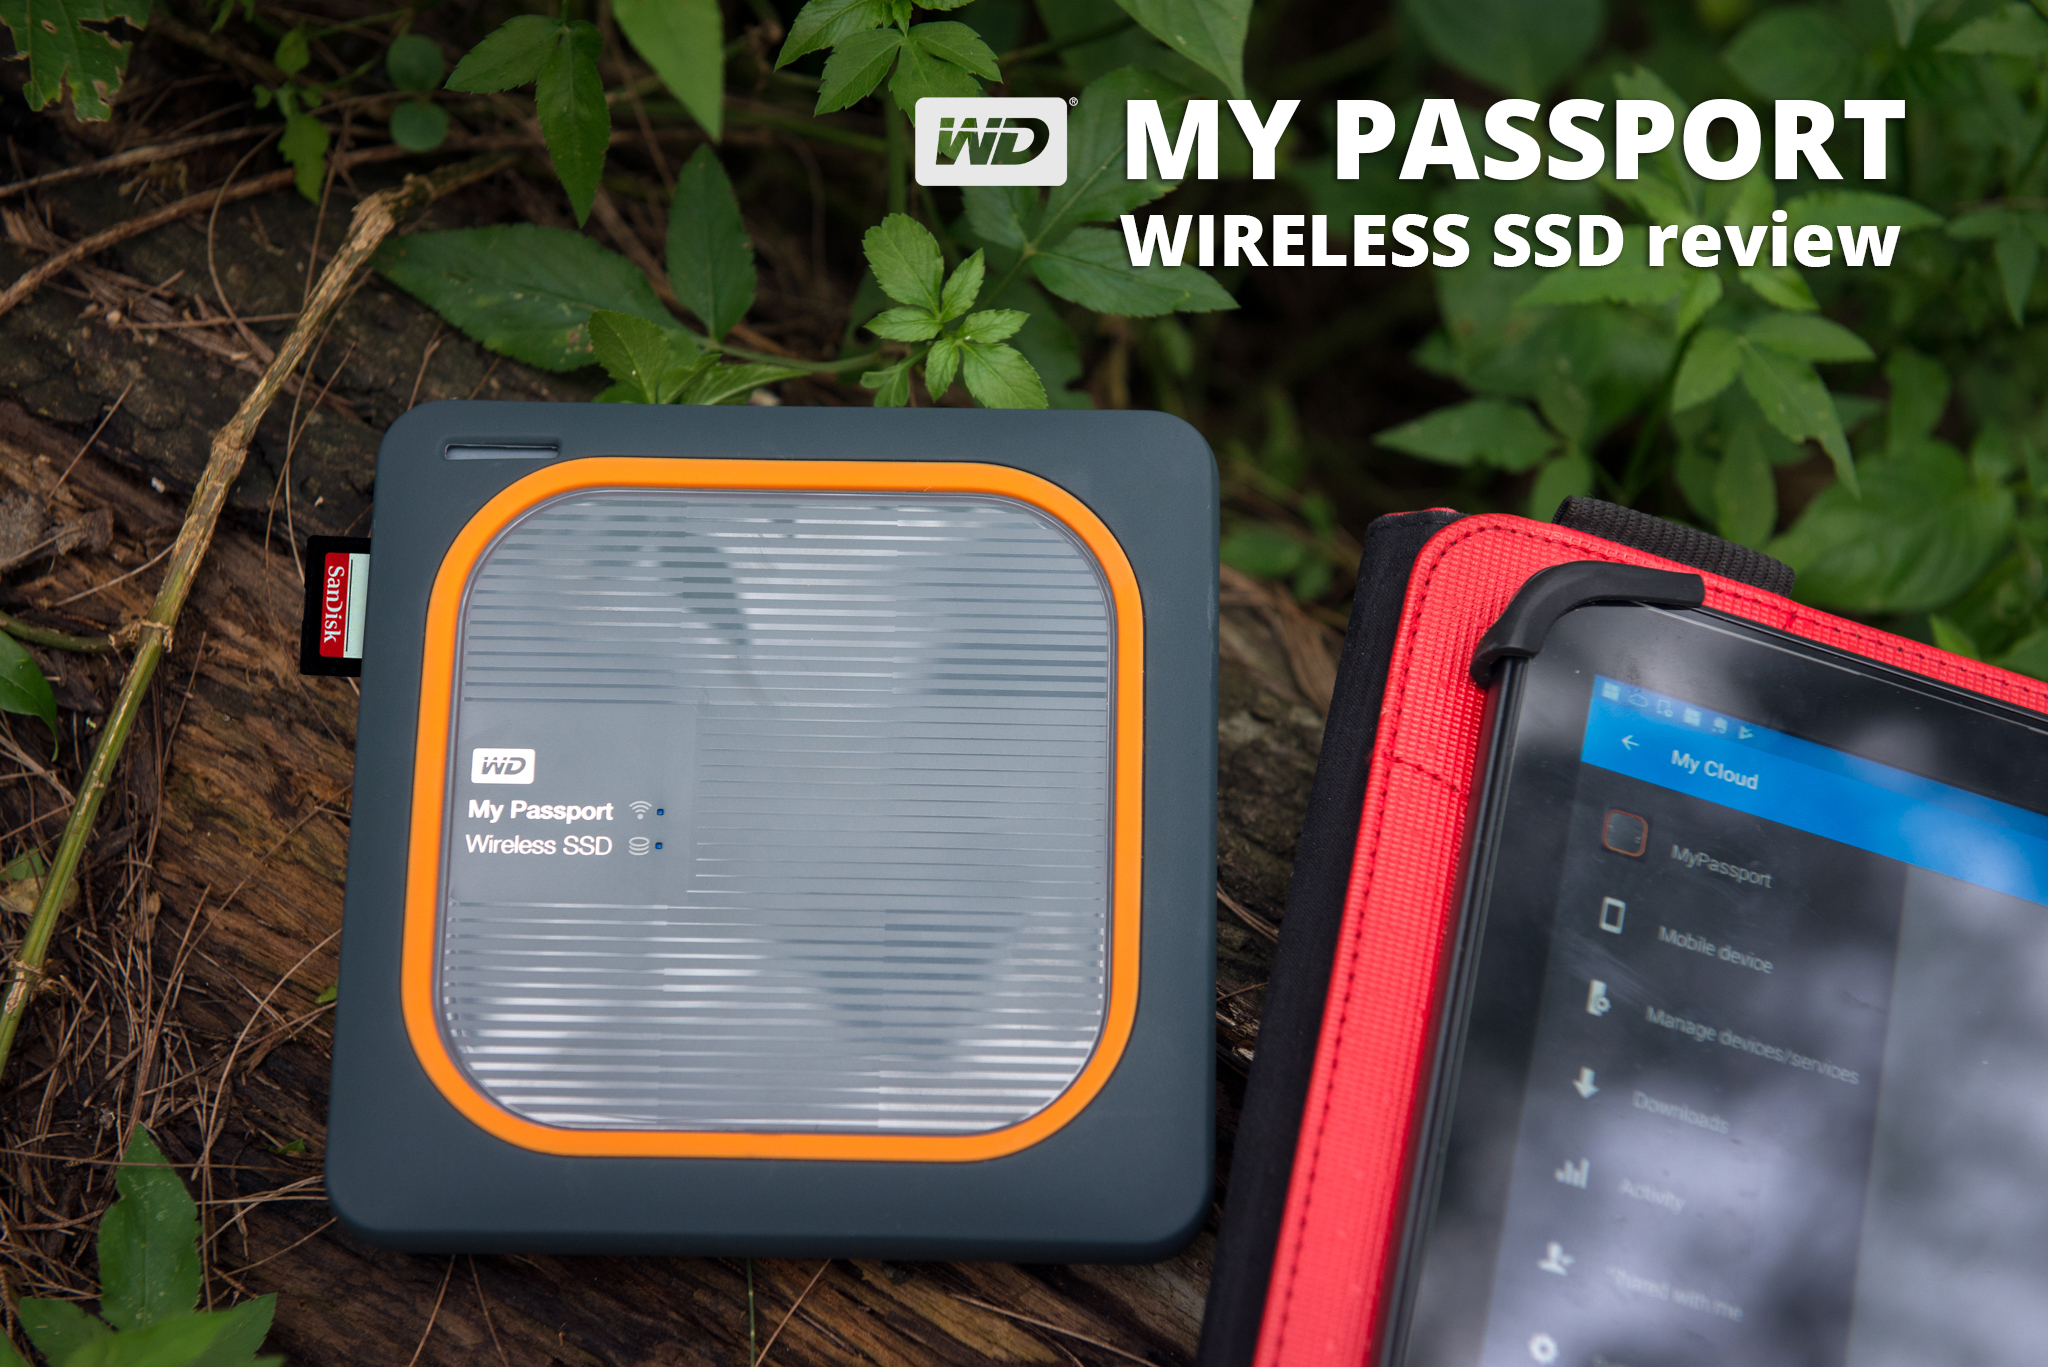 WD My Passport Wireless SSD 500GB review | C S Ling Photography